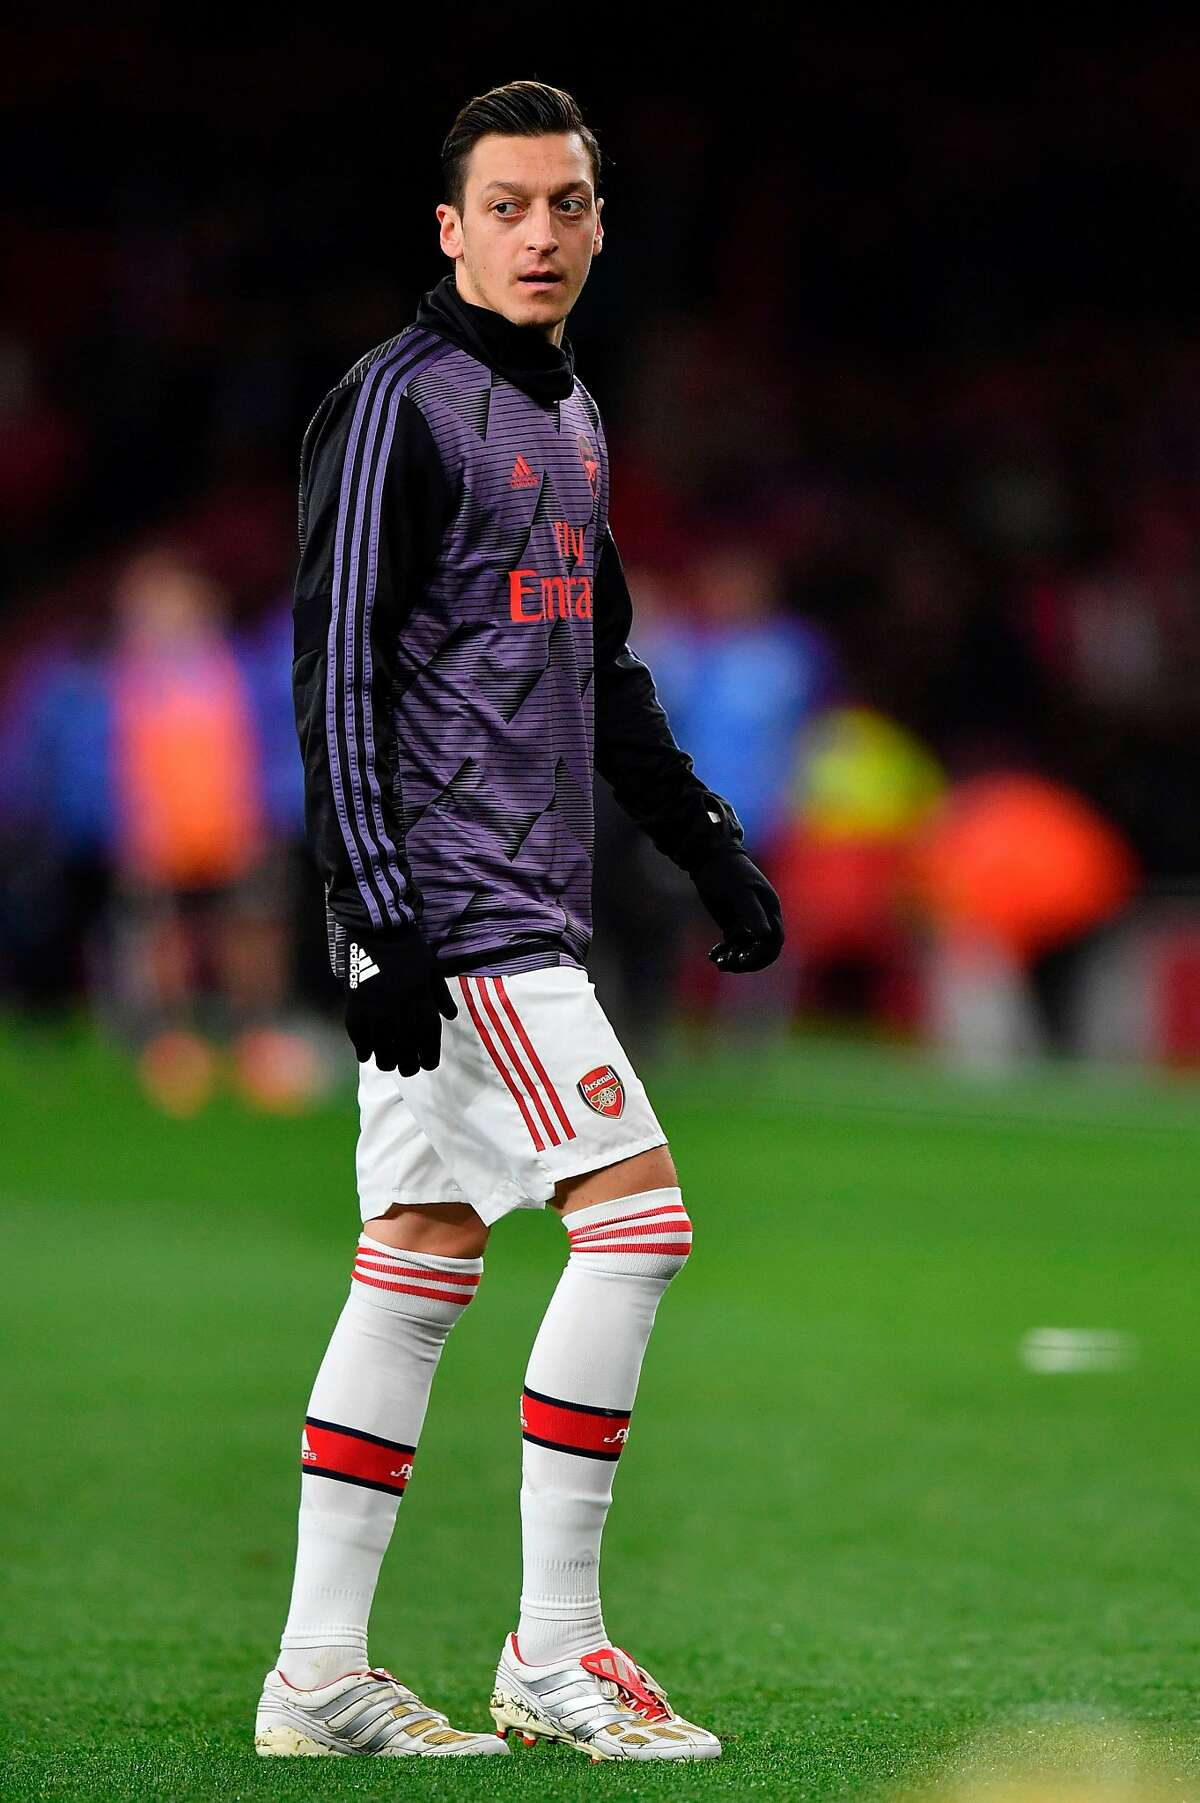 Arsenal's German midfielder Mesut Ozil warms up for the English Premier League football match between Arsenal and Manchester City at the Emirates Stadium in London on December 15, 2019. (Photo by Ben STANSALL / AFP) / RESTRICTED TO EDITORIAL USE. No use with unauthorized audio, video, data, fixture lists, club/league logos or 'live' services. Online in-match use limited to 120 images. An additional 40 images may be used in extra time. No video emulation. Social media in-match use limited to 120 images. An additional 40 images may be used in extra time. No use in betting publications, games or single club/league/player publications. / (Photo by BEN STANSALL/AFP via Getty Images)